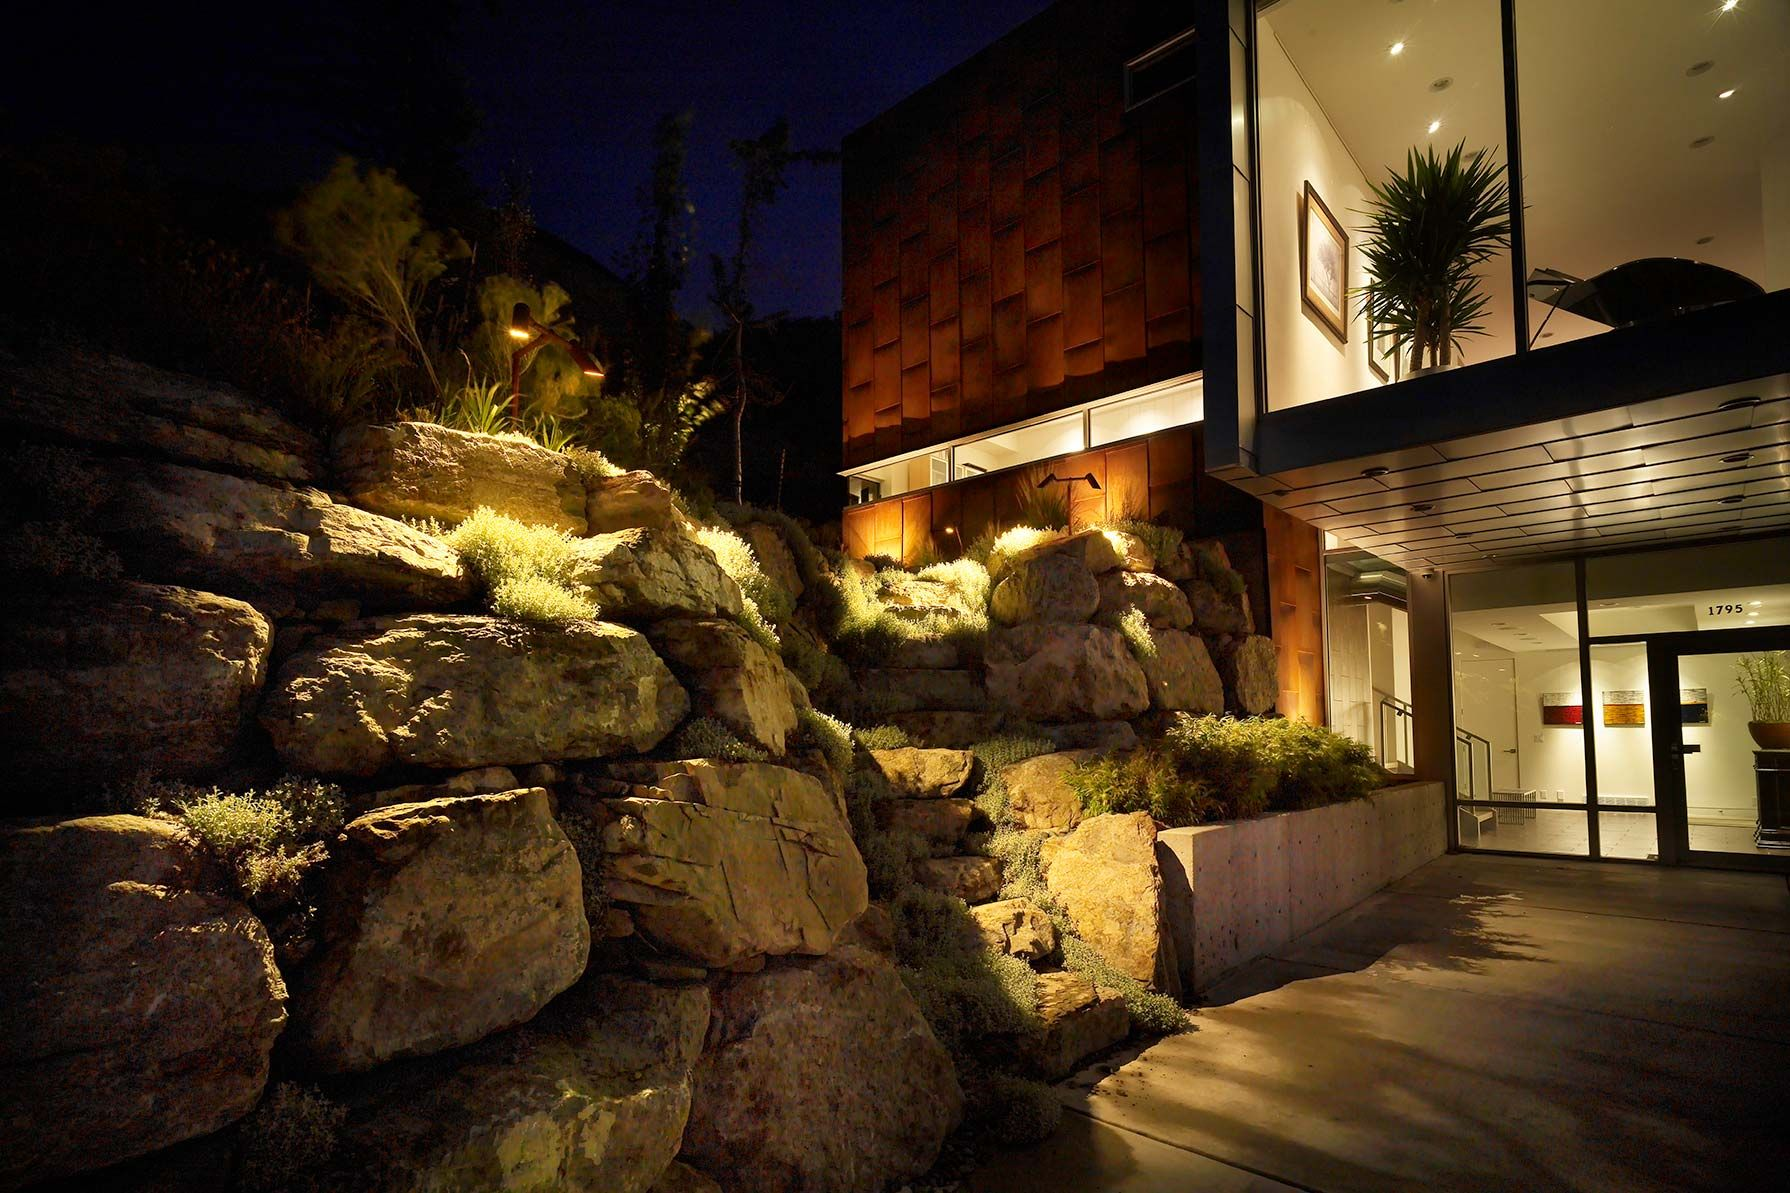 Wall And Wash Lighting Ideas With Images Wall Wash Lighting Landscape Lighting Residential Lighting